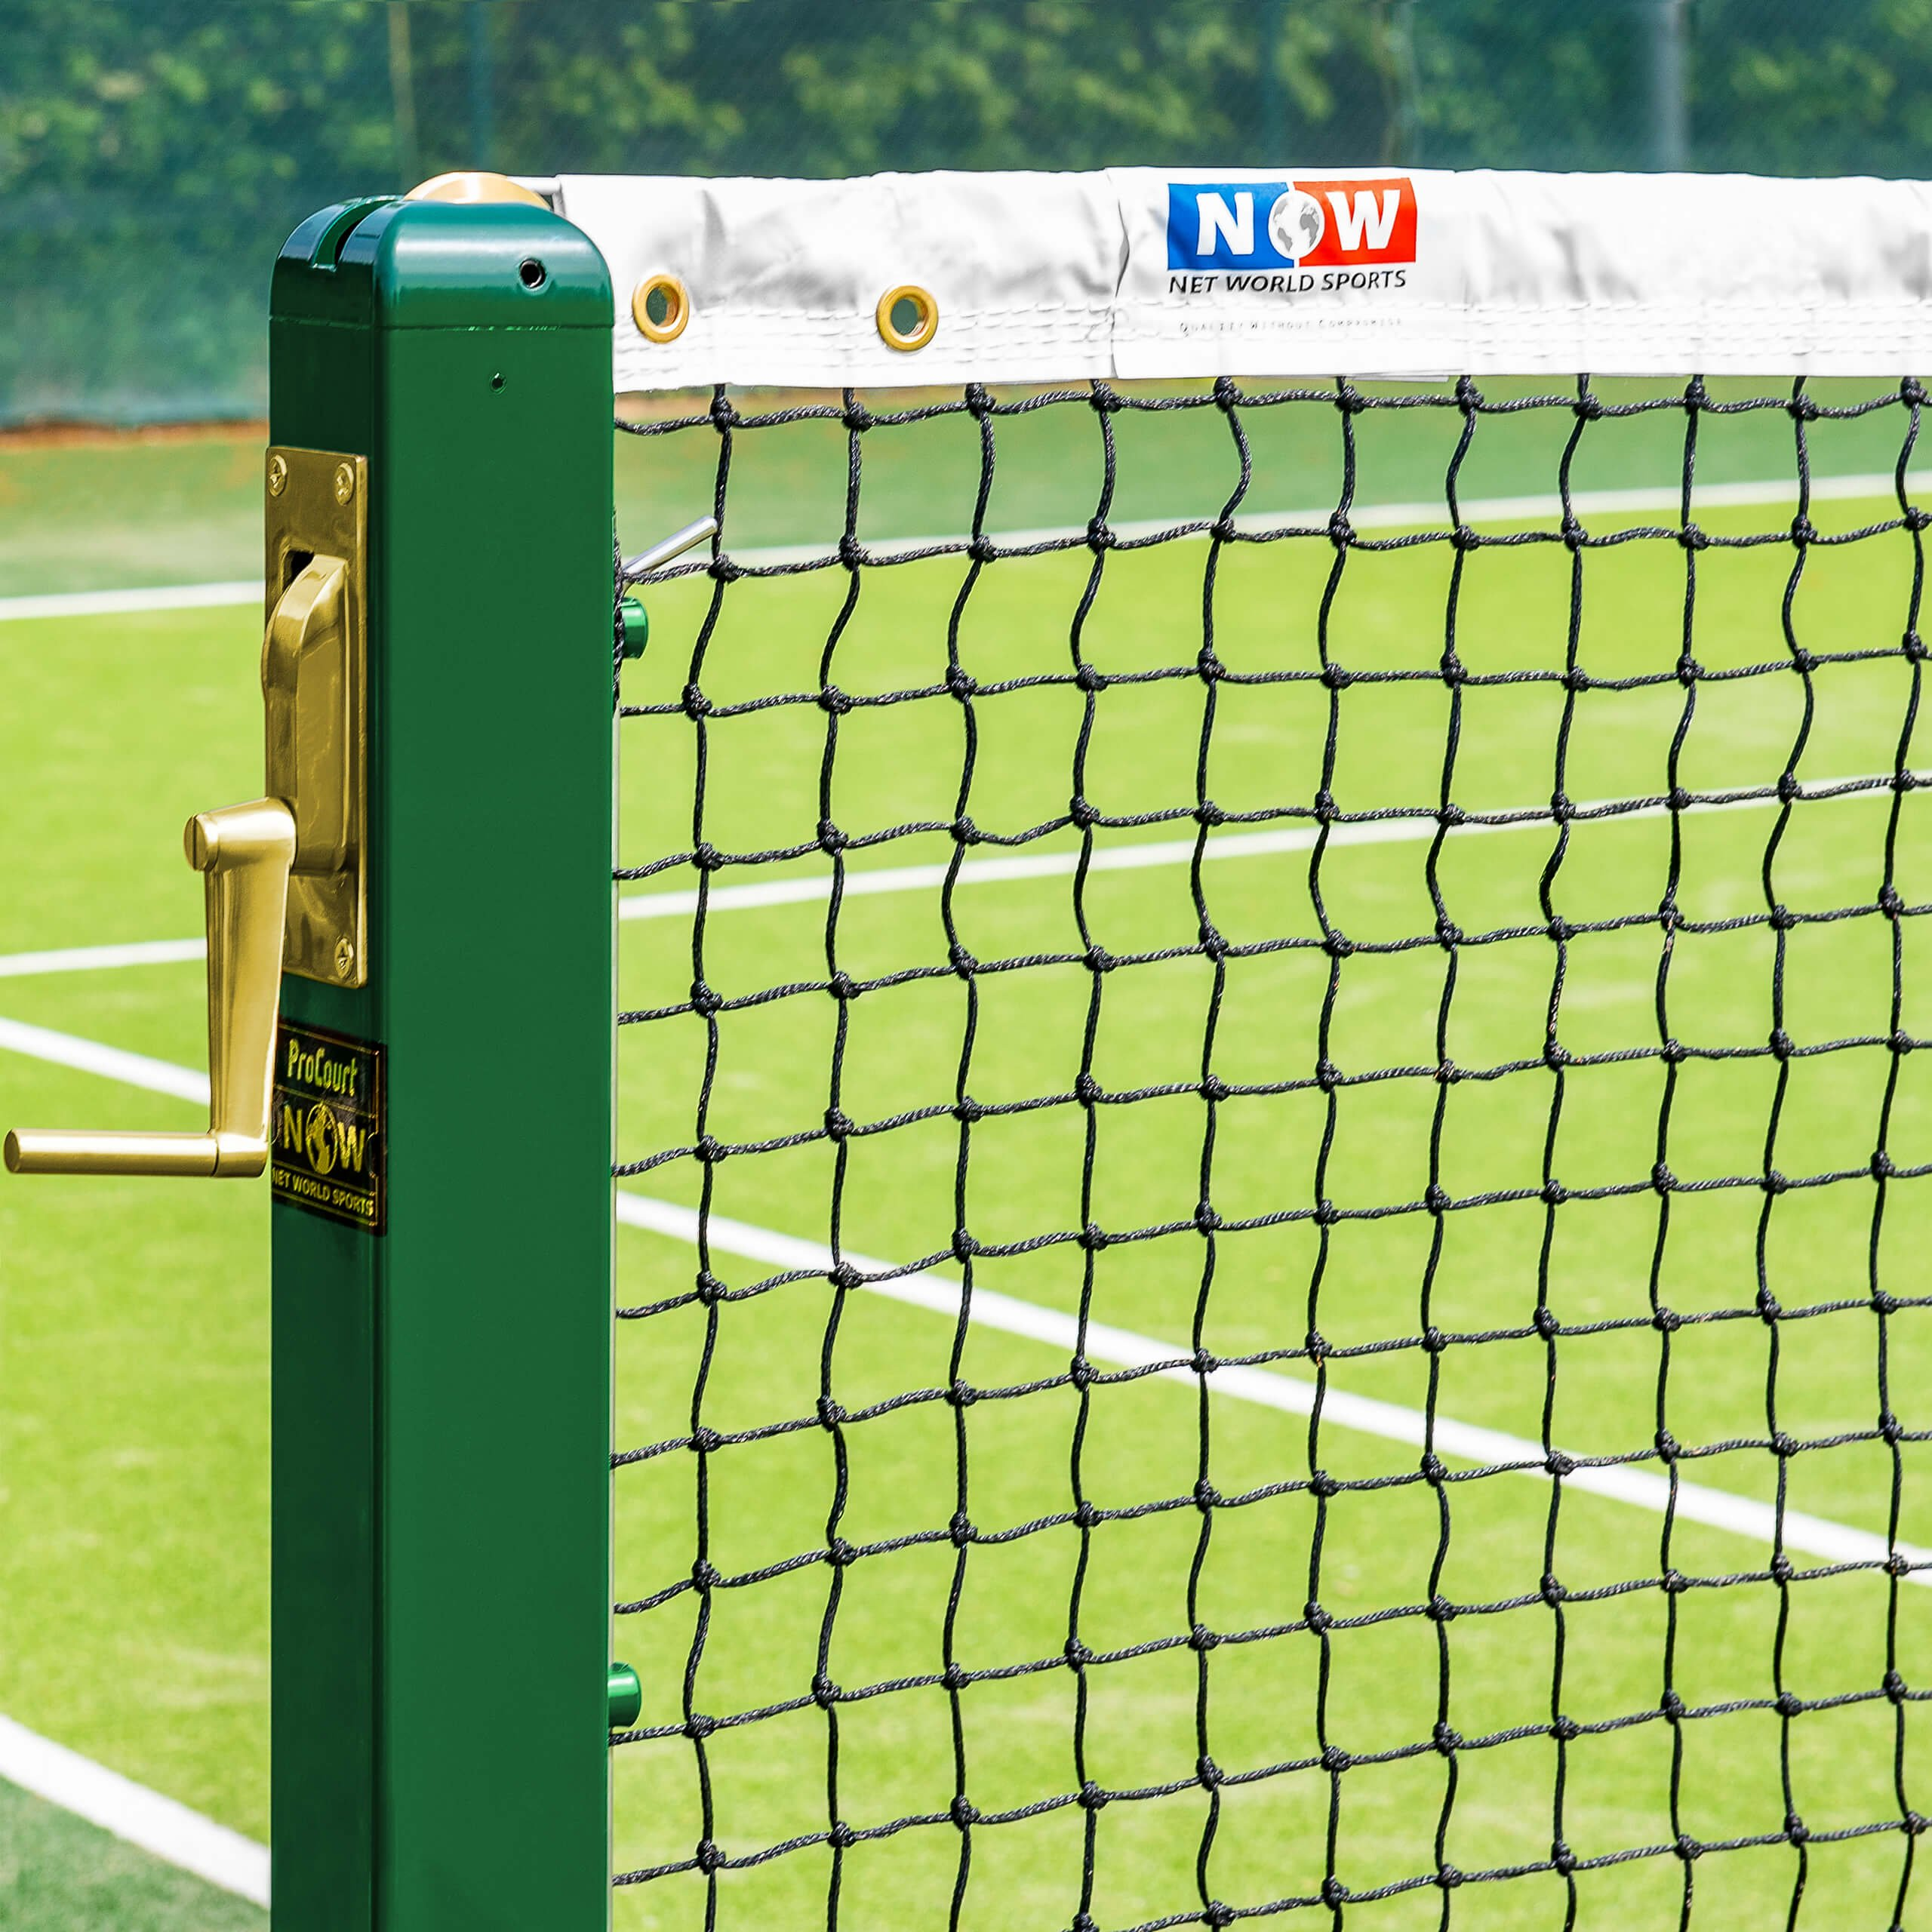 Vermont 3mm Tennis Net (14lb) | Championship Quality | Overlocked Edges | 3mm Braided HDPE Twine | 42ft Regulation Doubles | Headline Wire Included | ITF Regulation Tennis Net